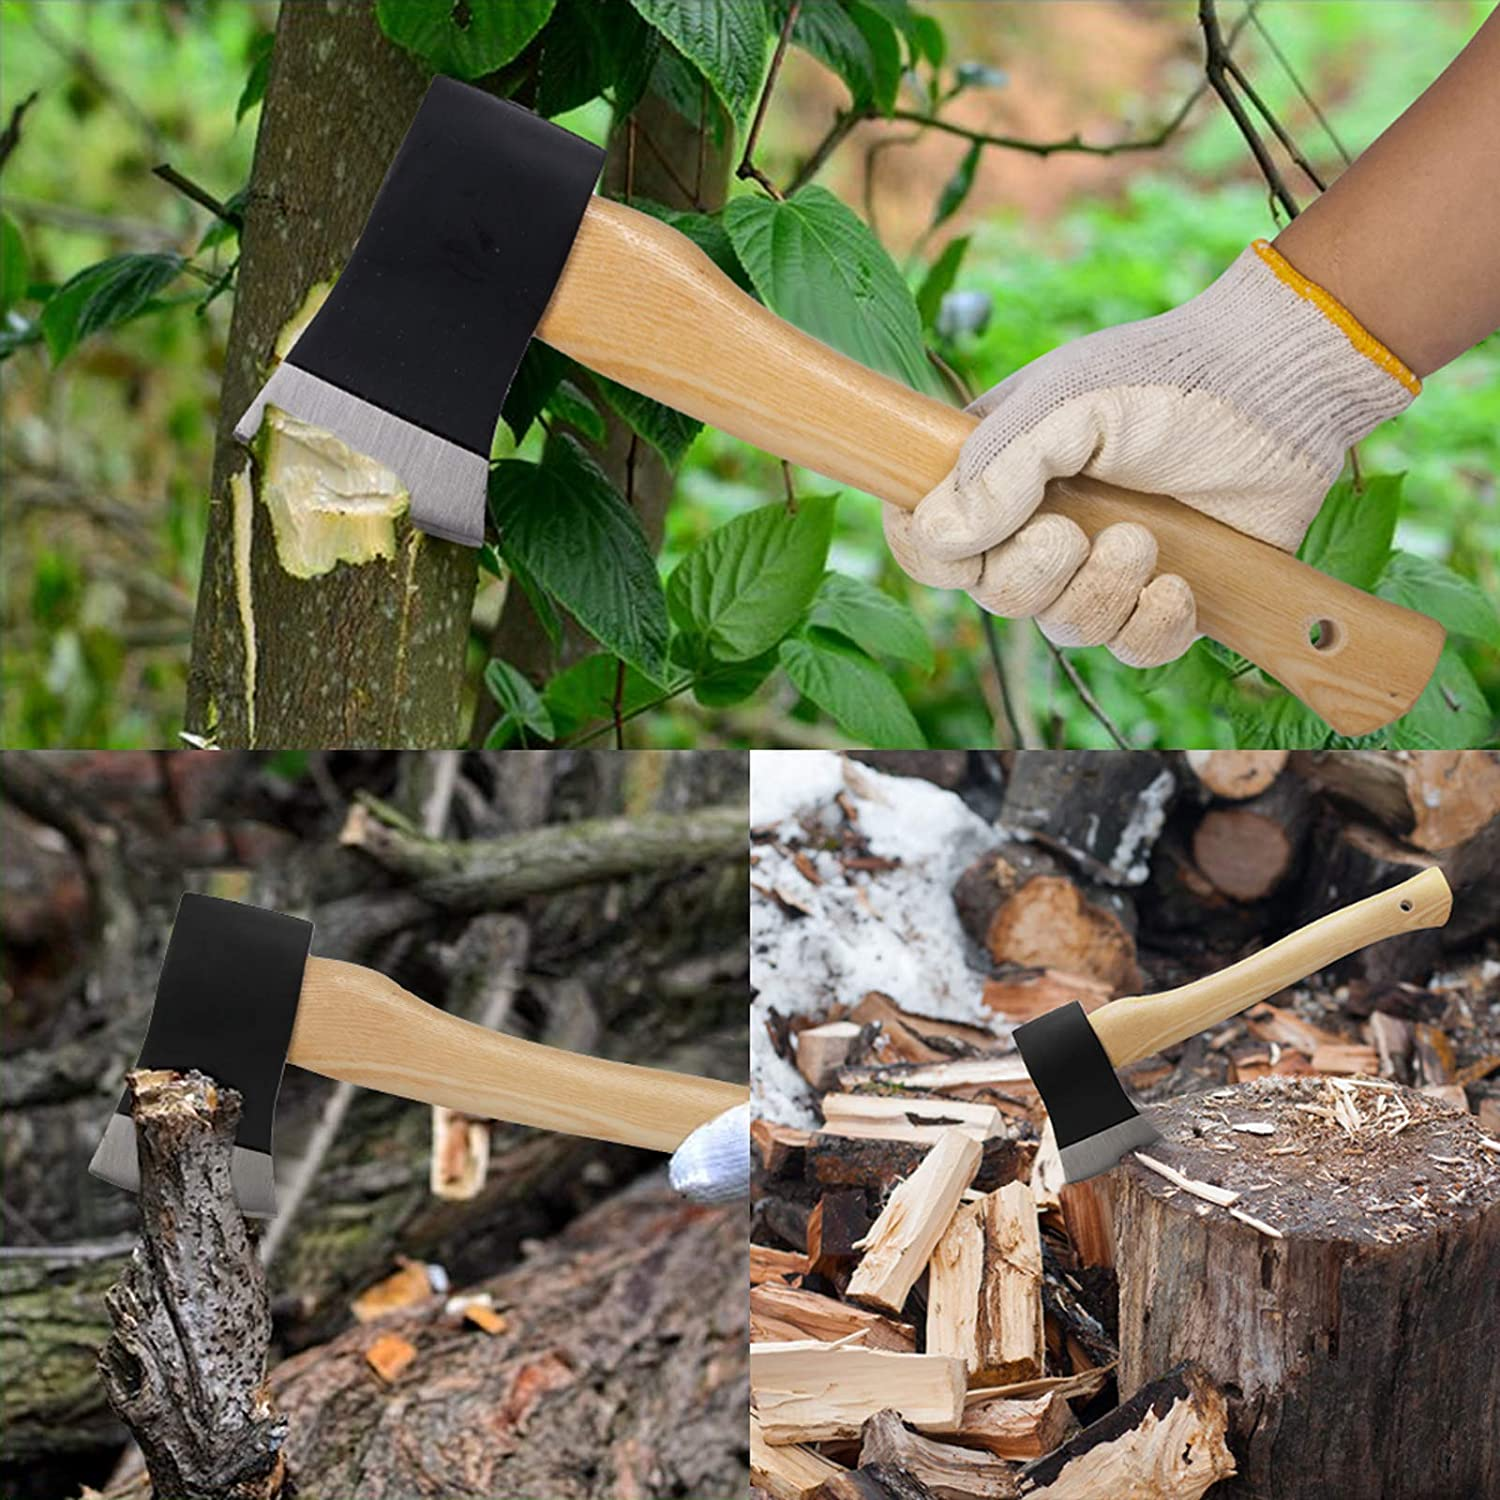 Garden hatchet,Great for Camping Black Outdoors and Chopping Wood Gtongoko Carbon Steel Camping Hatchet 15 inch Wood Chopping Axe Wooden Handle Camping Hand Tools with Protective Cover Survival